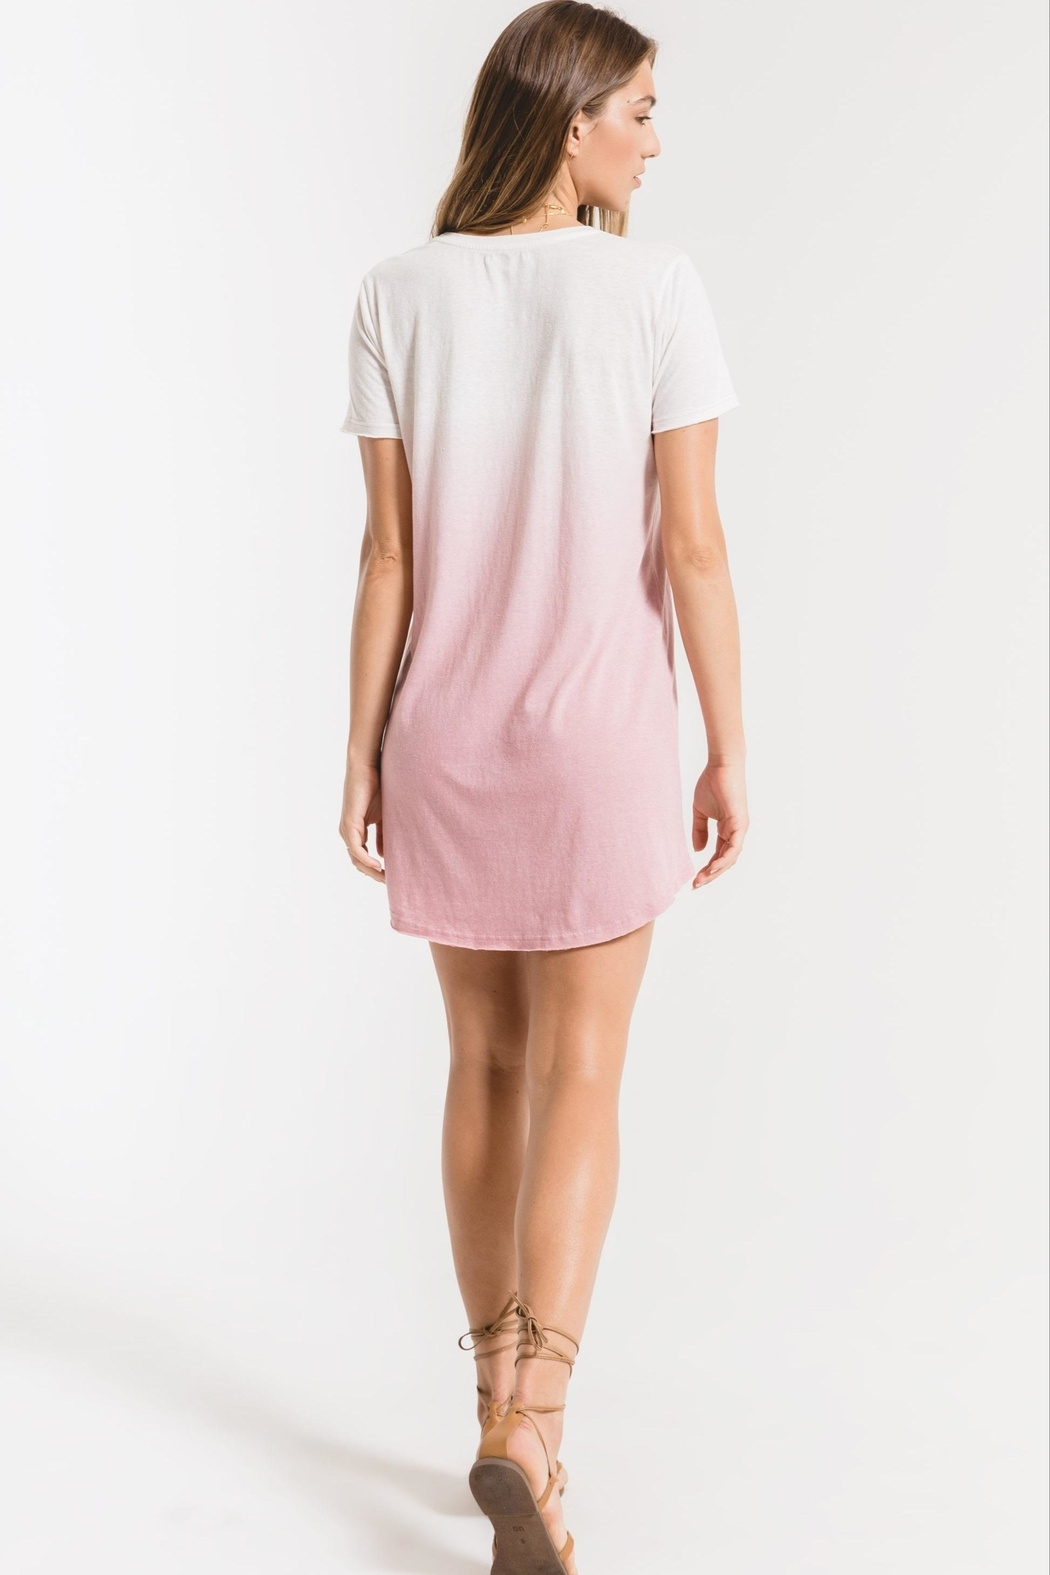 z supply Ombre Dip-Dye Dress - Front Full Image